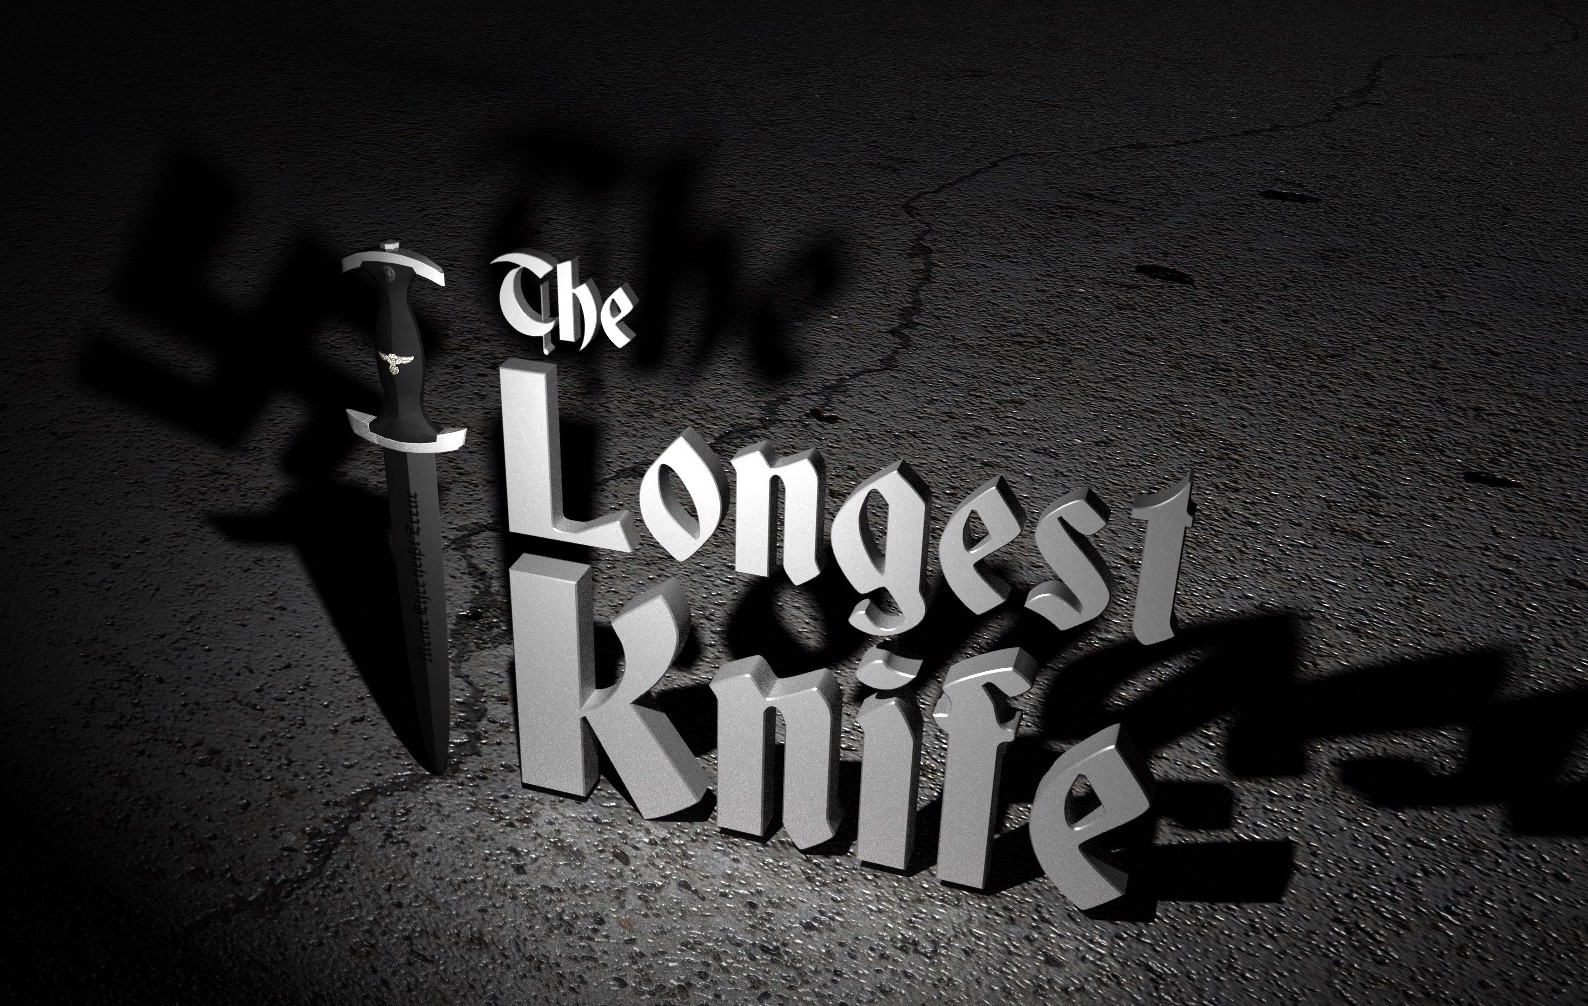 THE LONGEST KNIFE - OFFICIAL 2019 SELECTION